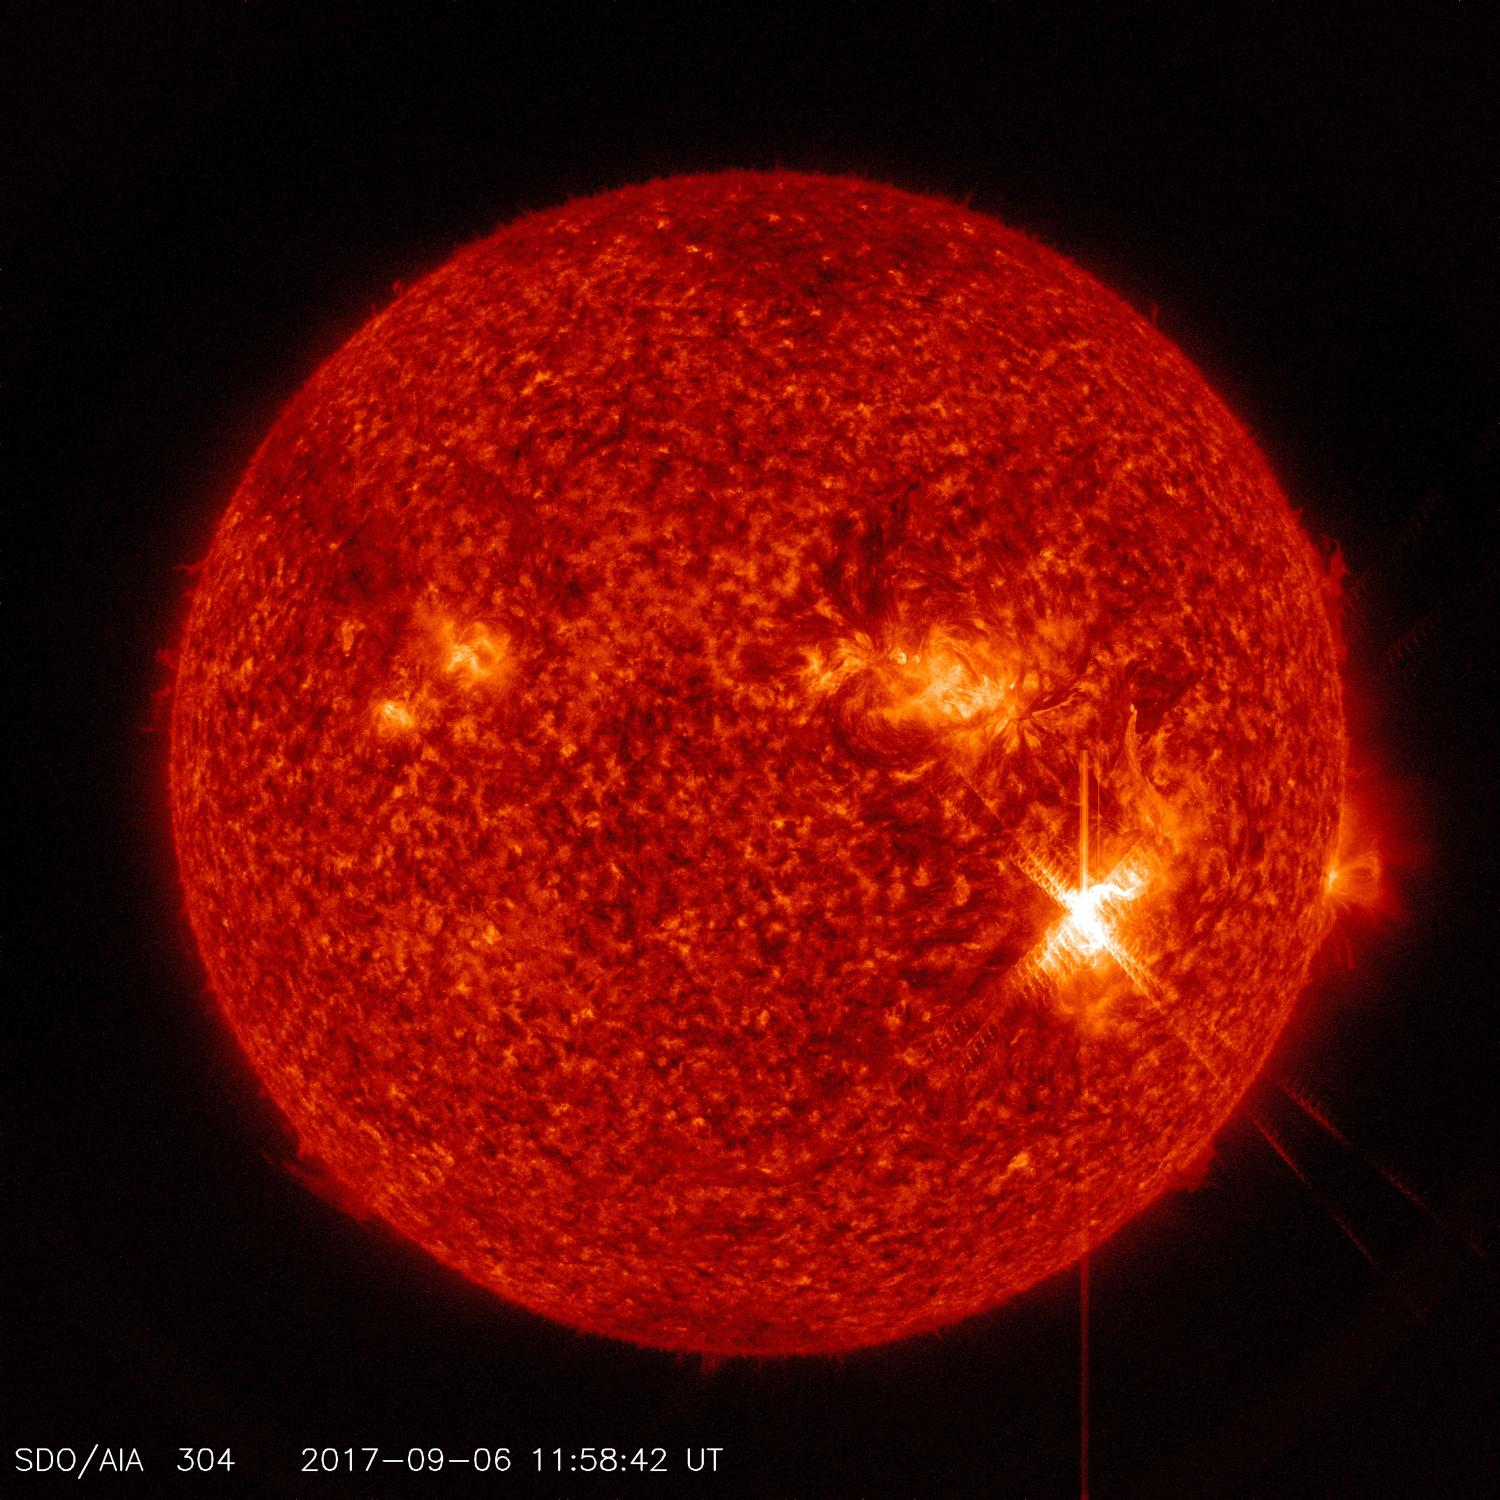 The sun has been emitting record-levels of solar radiation recently